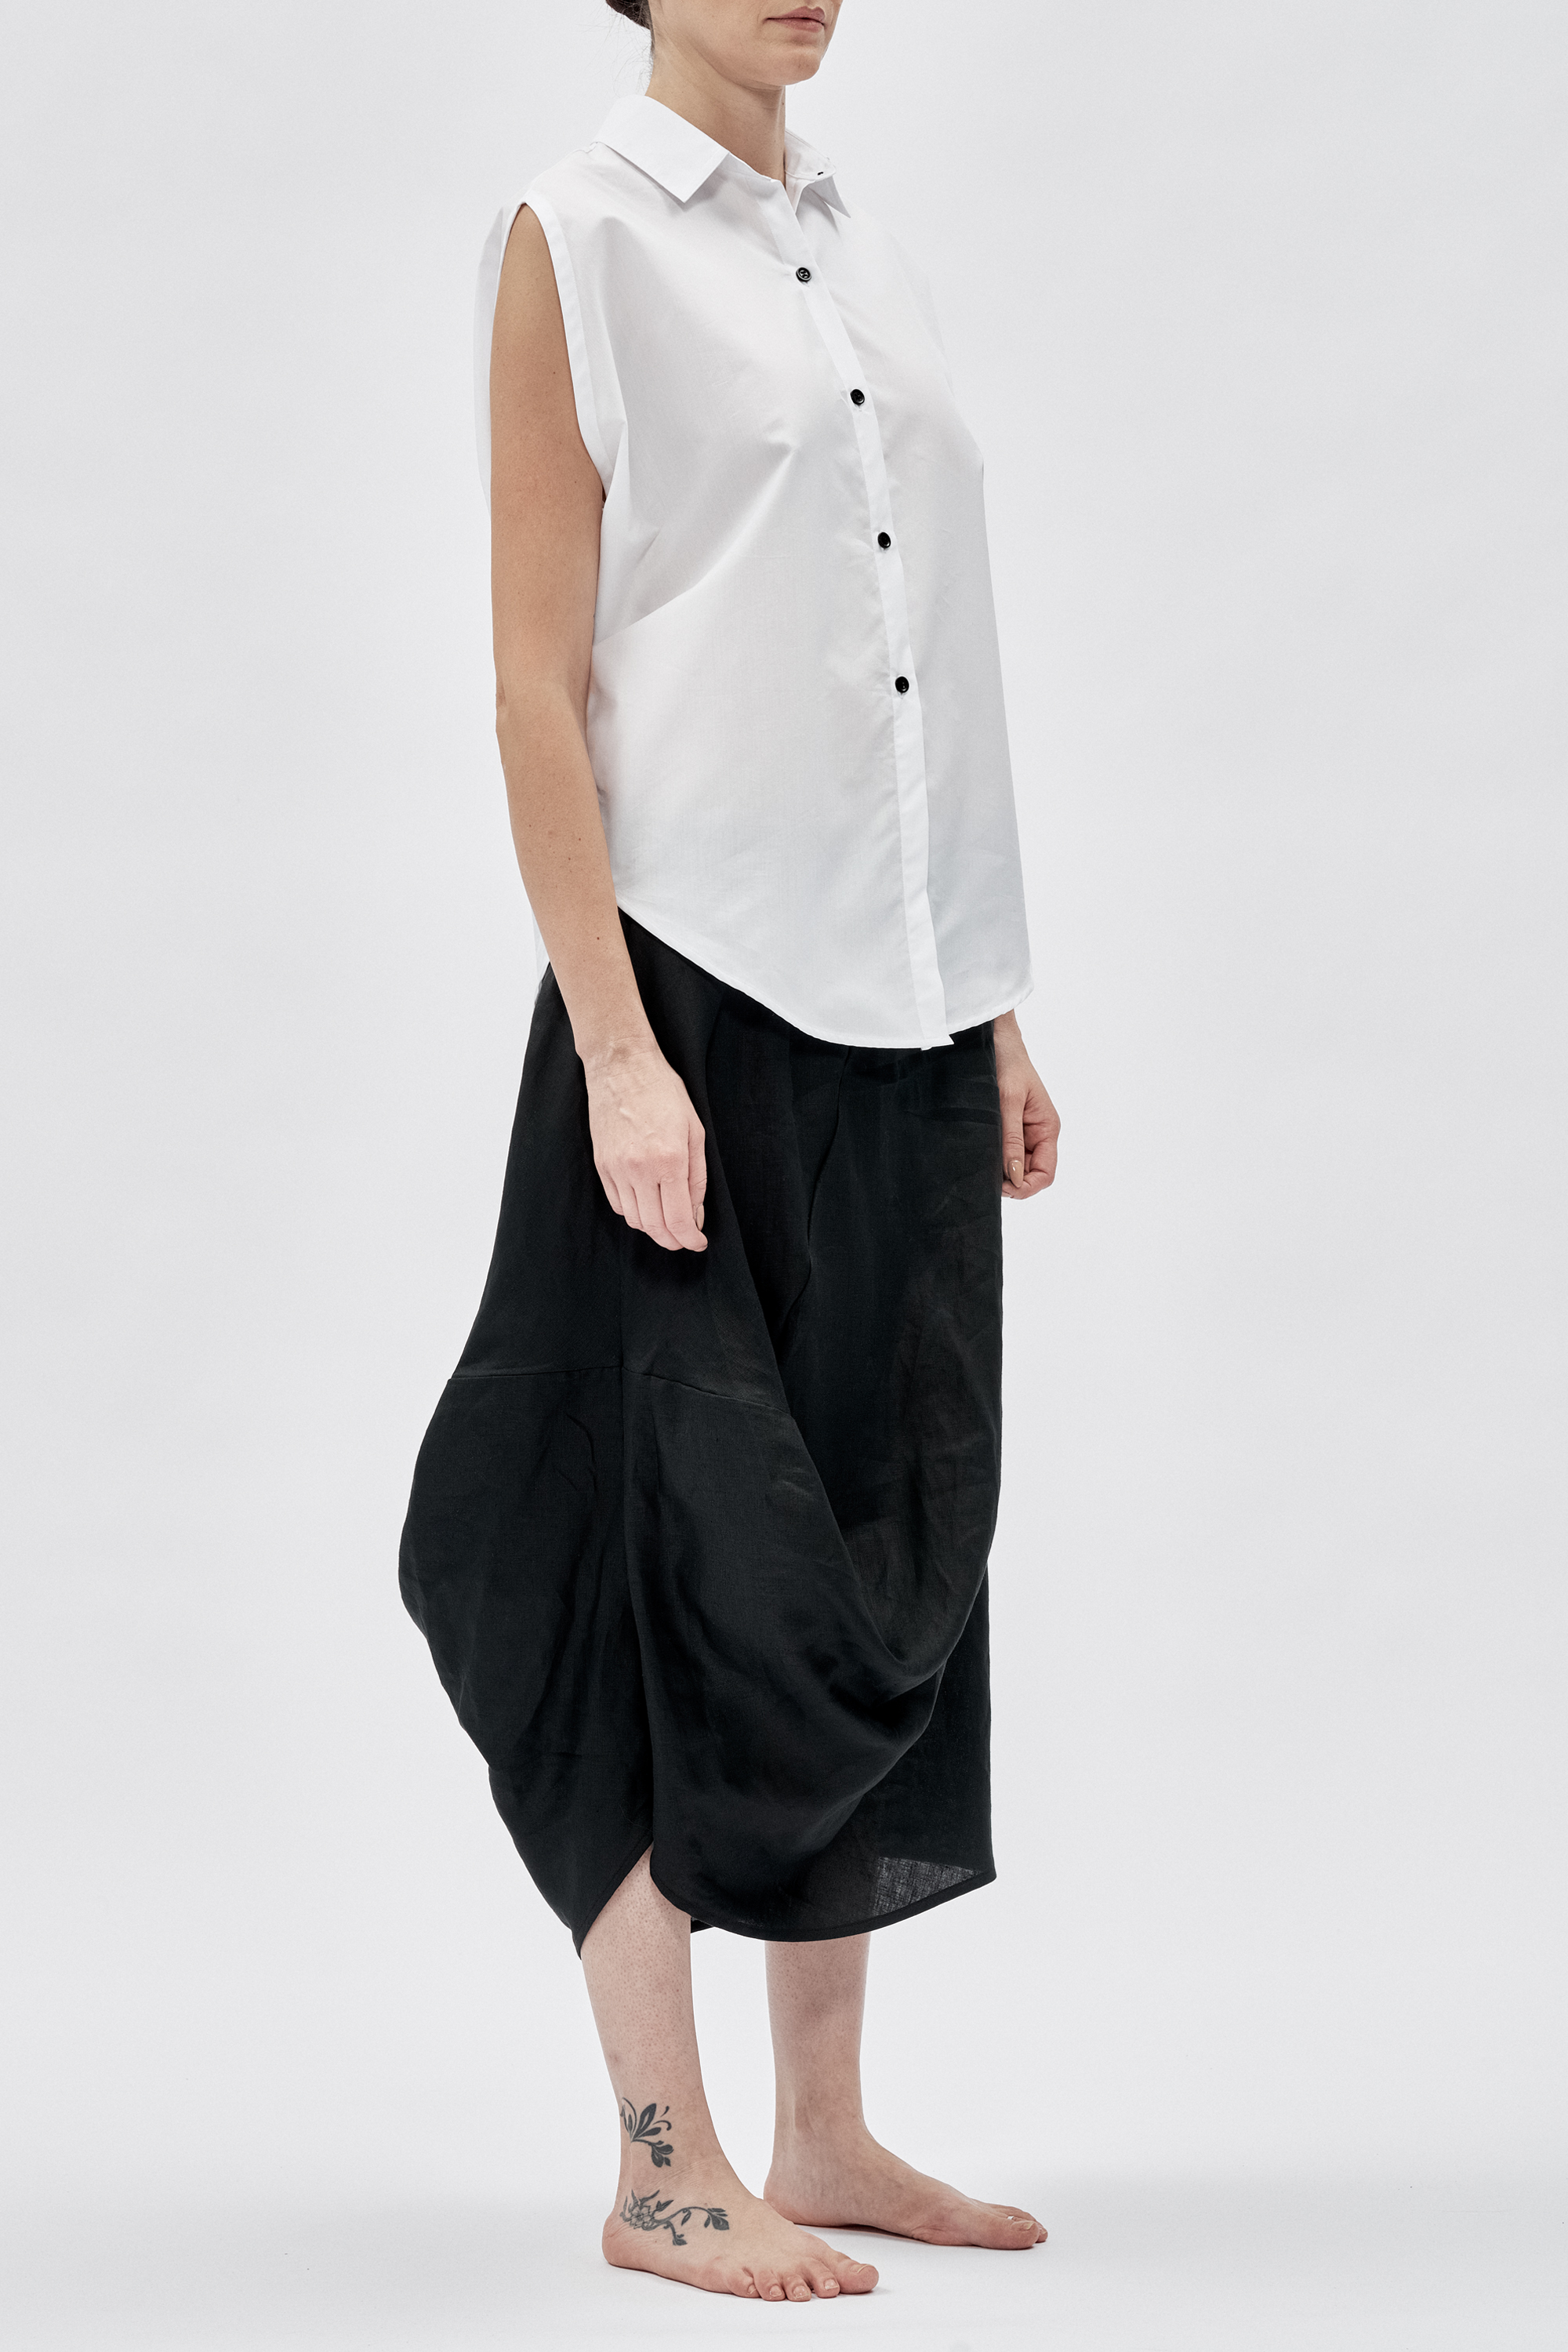 2bc8755be8549 OVERSIZED FUTURISTIC WHITE SHIRT — AryaSense